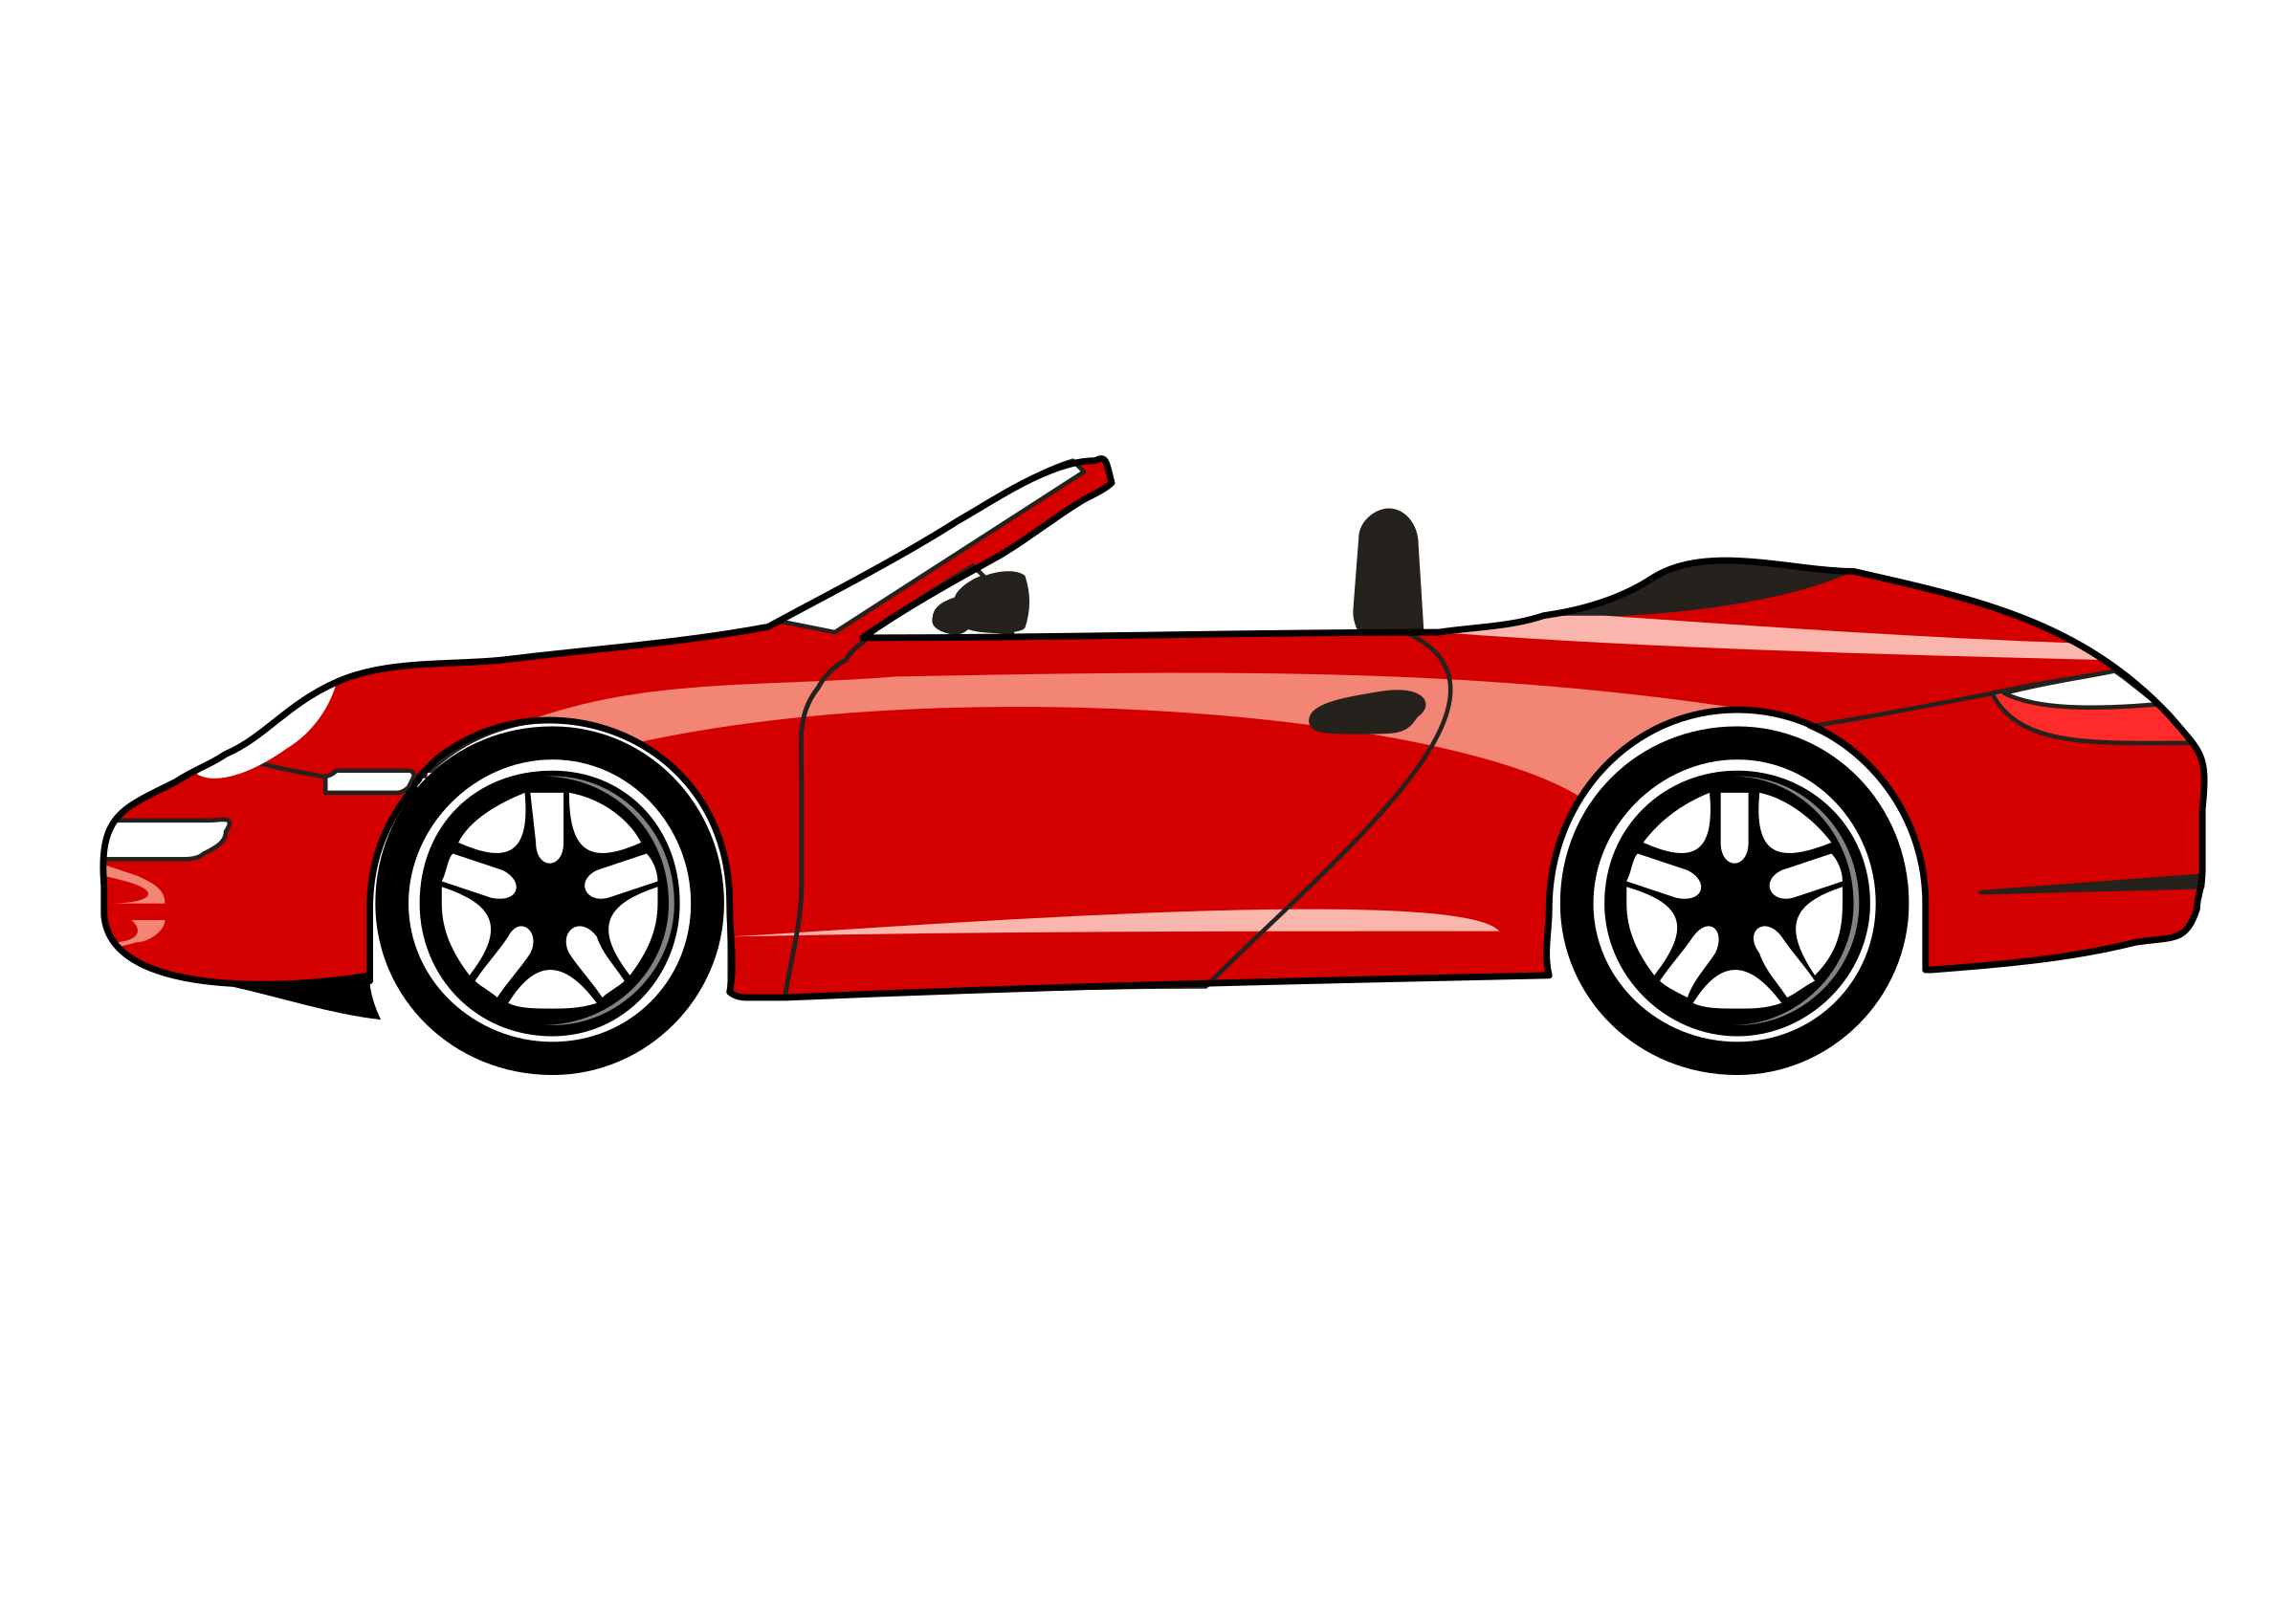 Car clipart high resolution picture royalty free download Car clipart high resolution - ClipartFest picture royalty free download